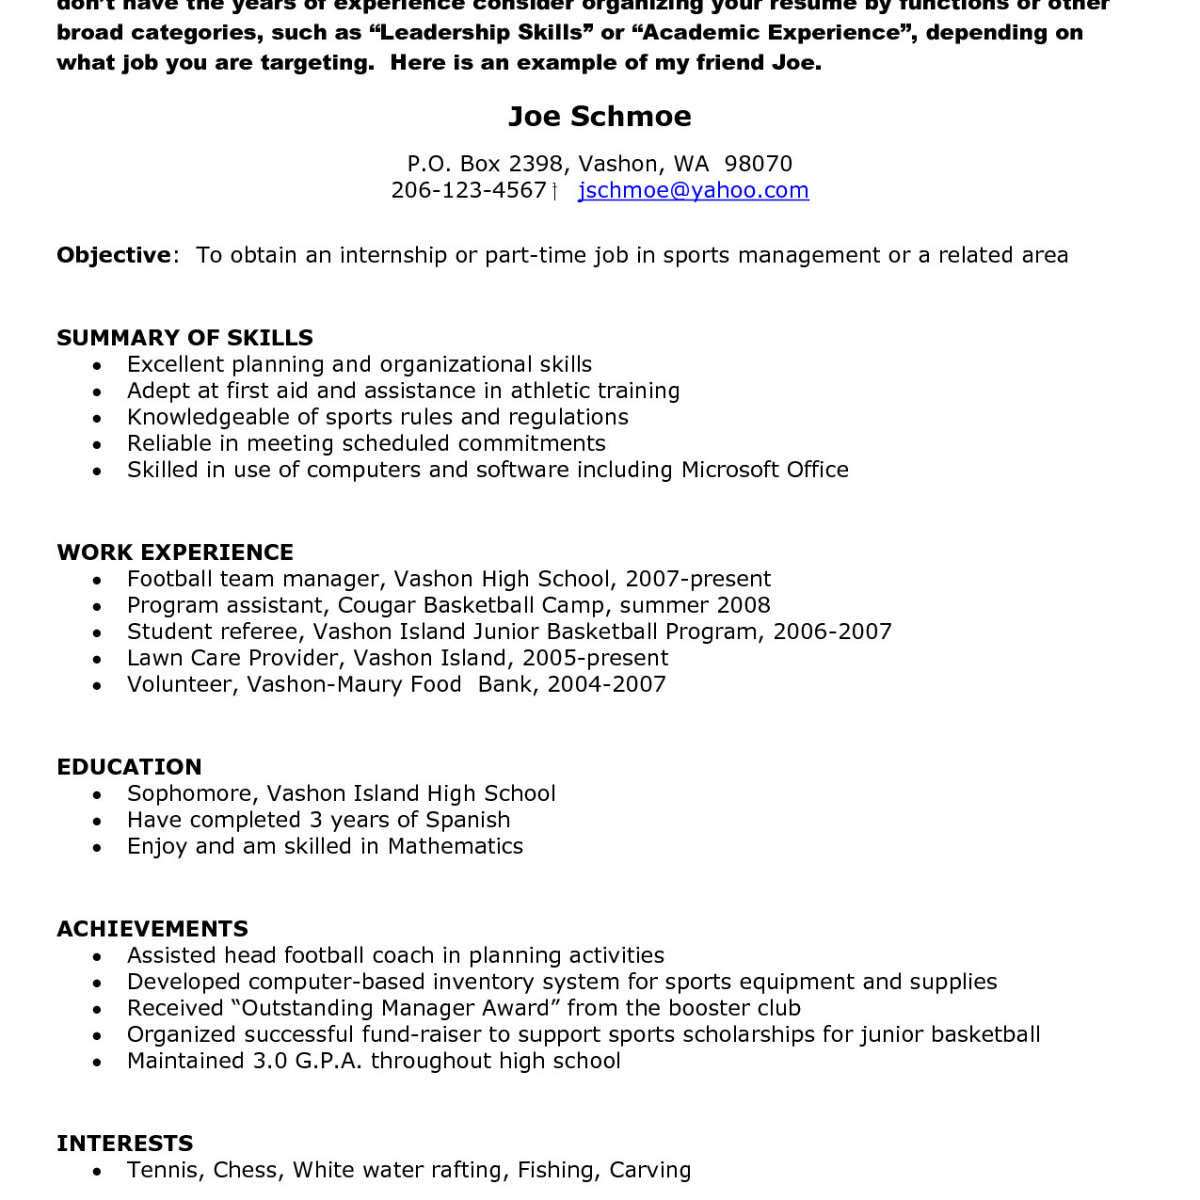 resume writing guide Collection-Resume Writing Tips Fresh Beautiful Development Resume Sample Resume Examples 0d 18-l